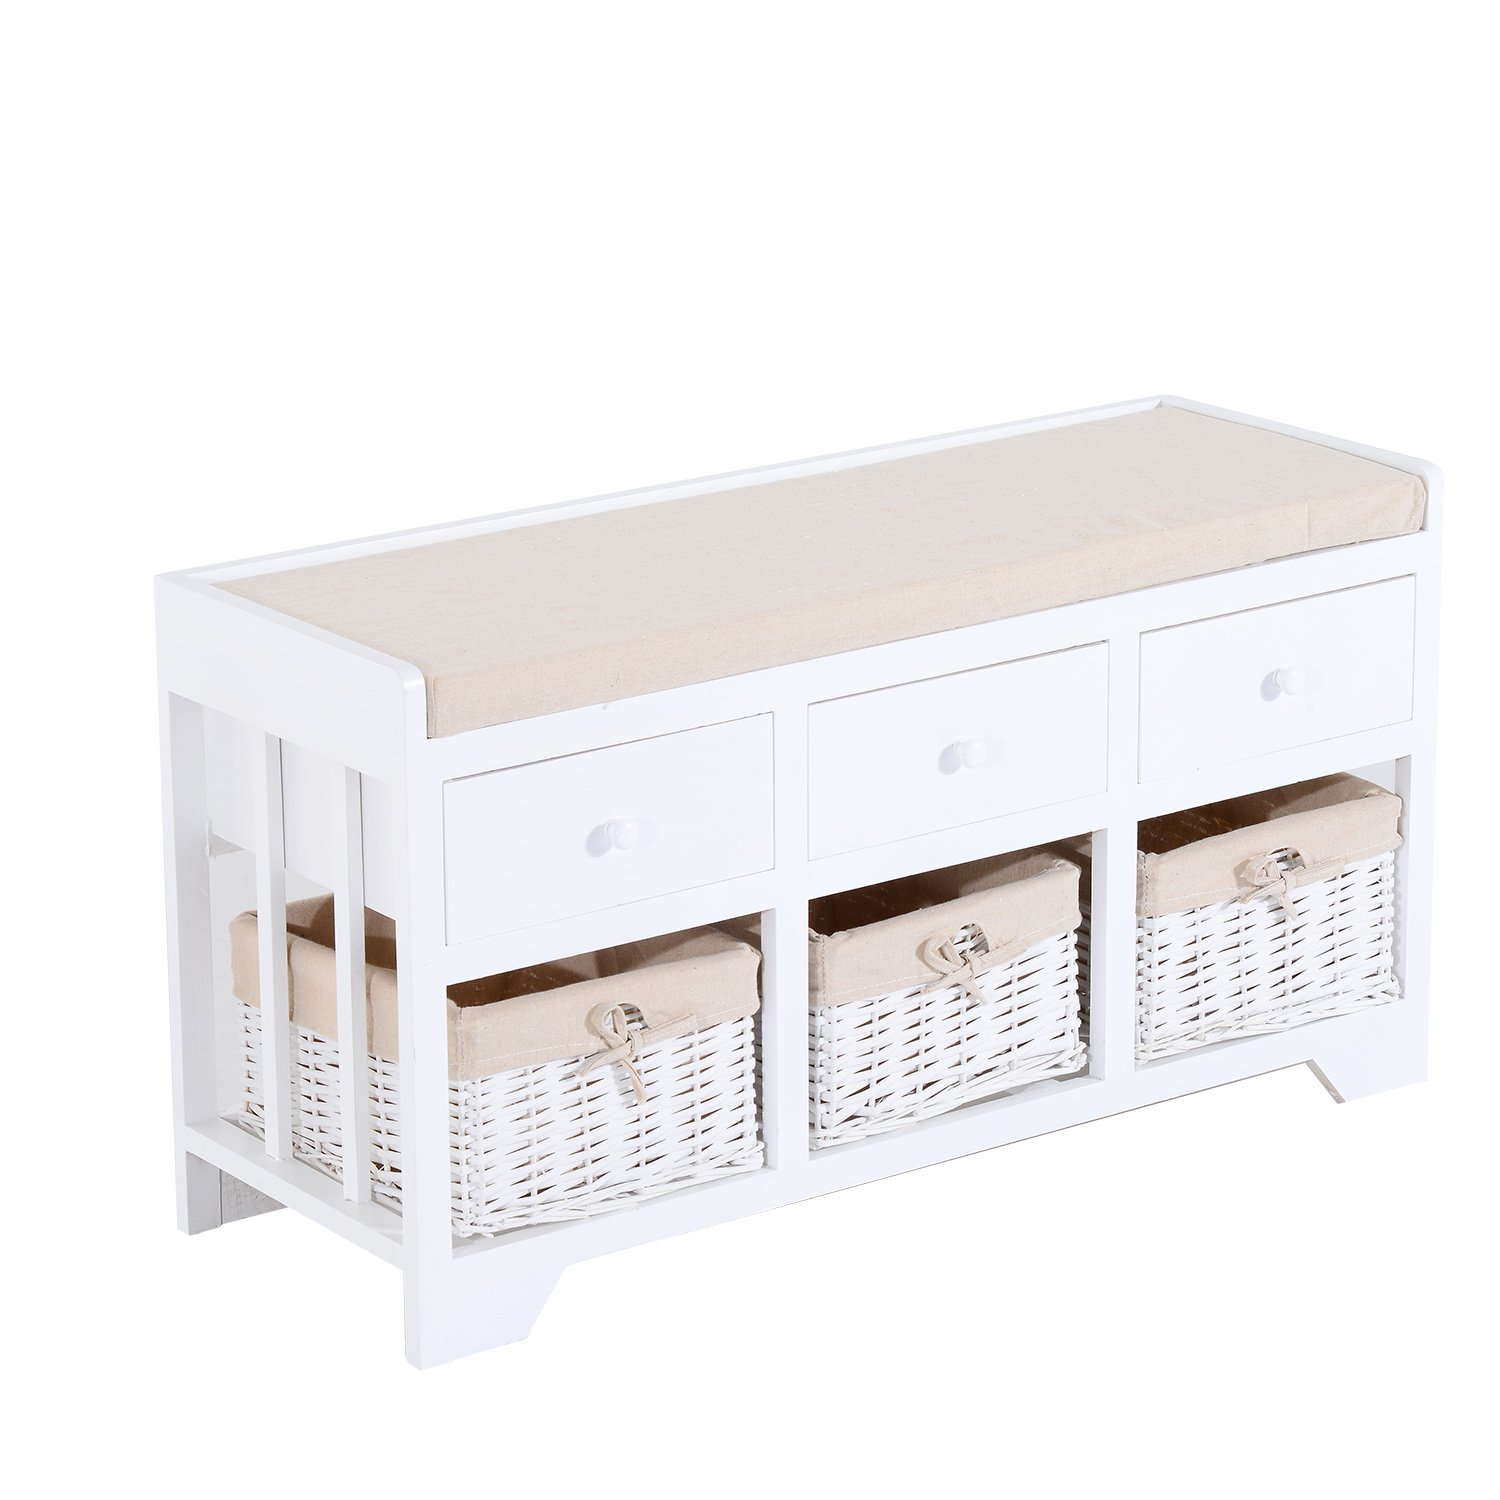 cubby white inspiration shoe storage rack way gallery cube the bench stackable basics products and